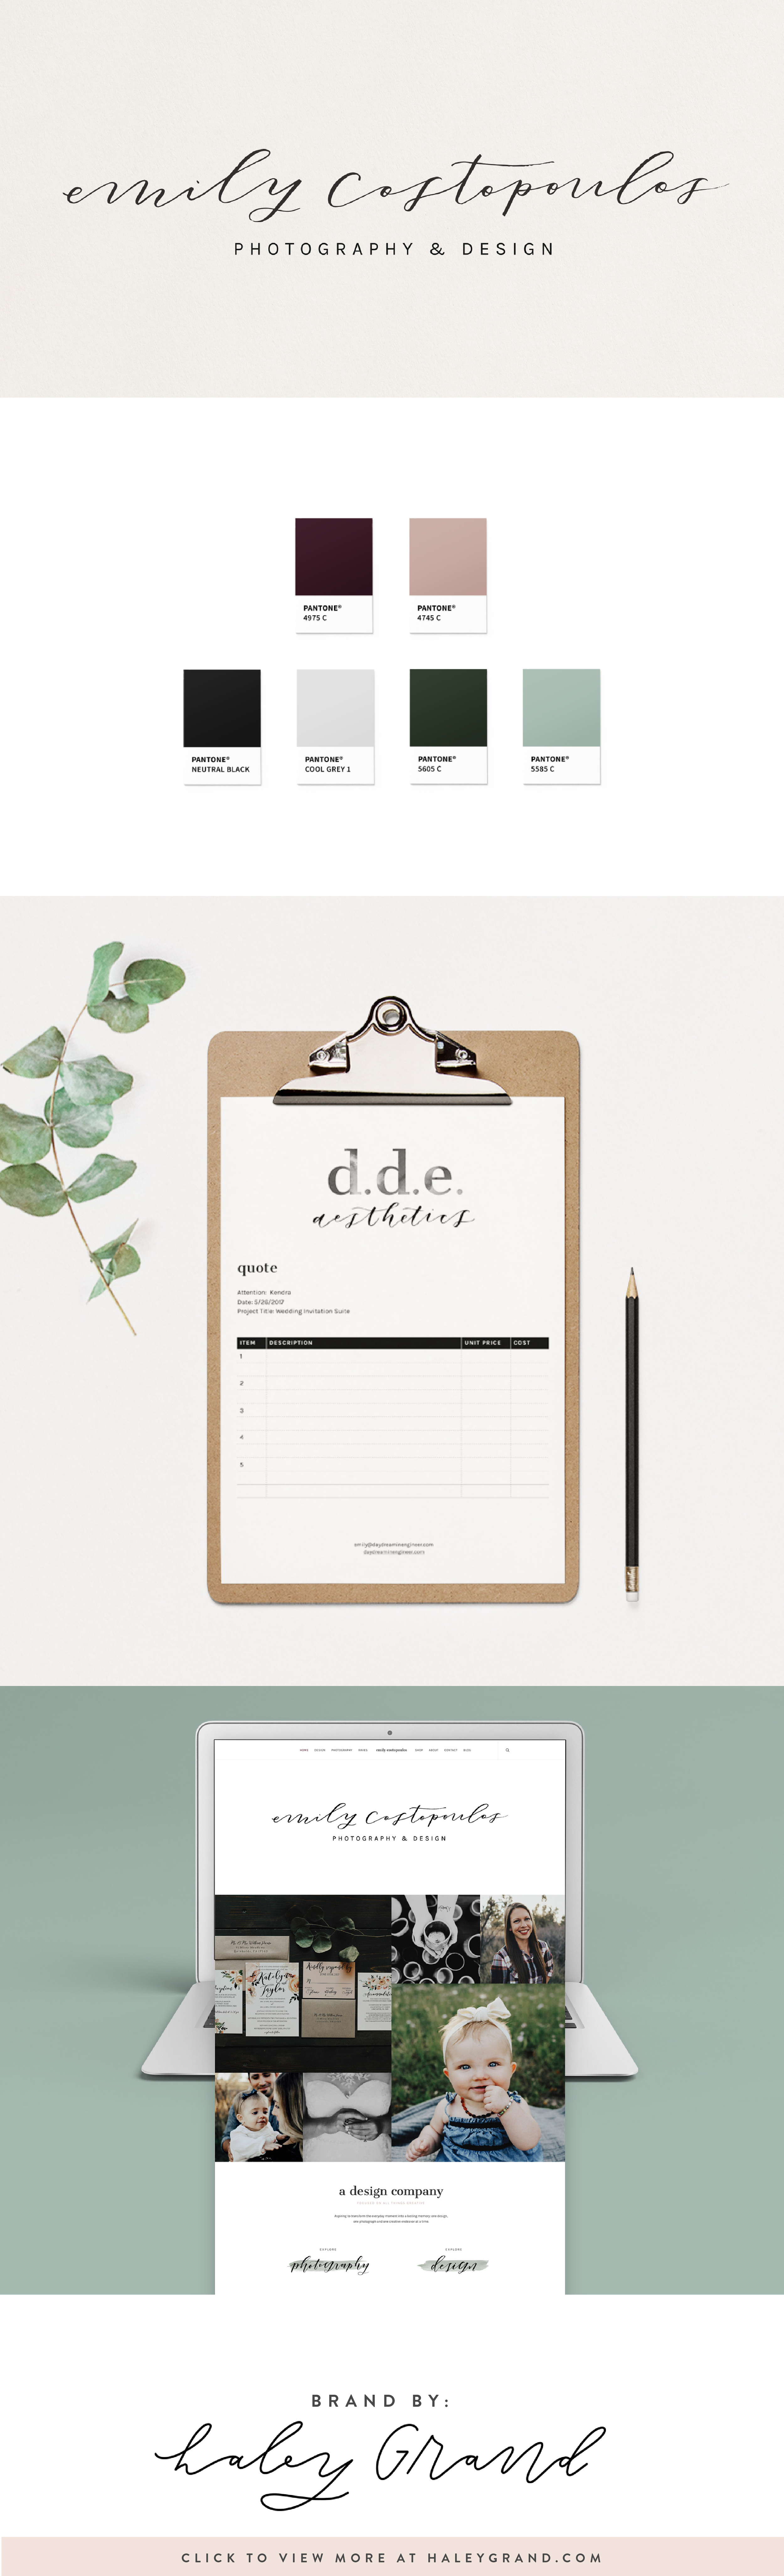 This romantic, down to earth calligraphy sets the tone for this hand-lettered brand and website. Are you a creative entrepreneur? Up-level your brand with a logo designed using hand lettering and illustration by Haley Grand! Click to see more of Haley's beautiful work! #branding #handlettering #websitedesign